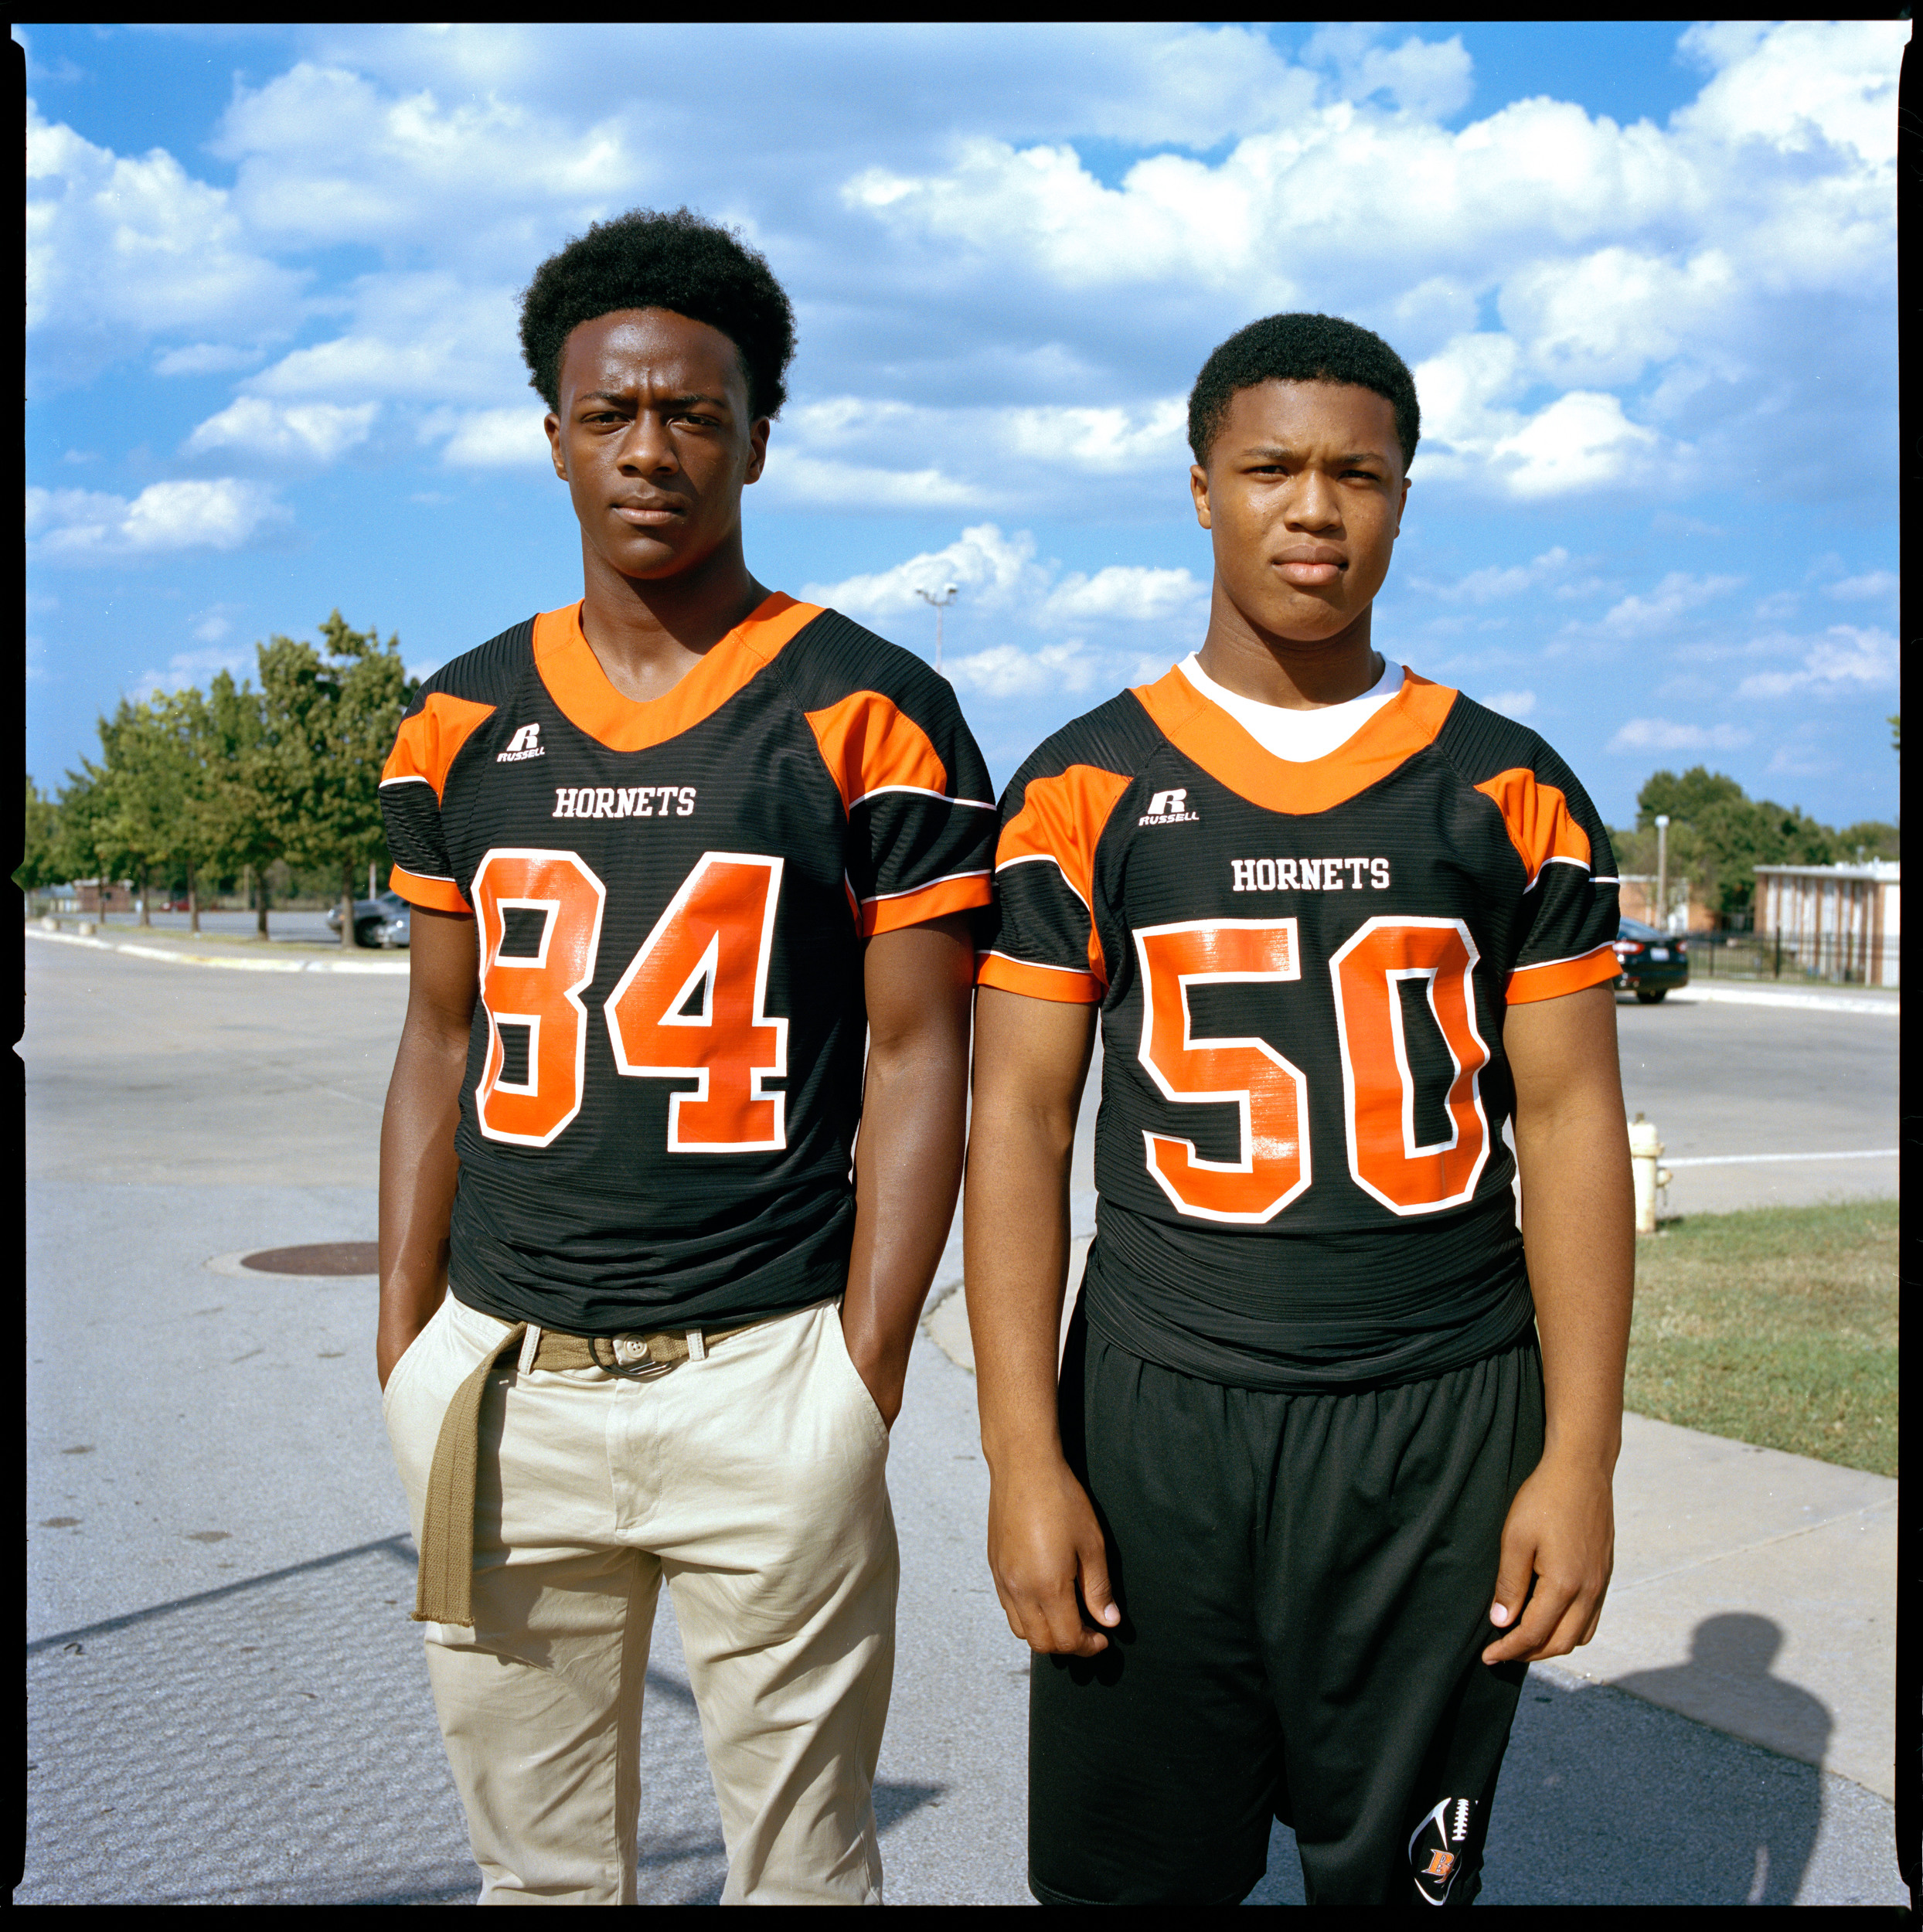 "Tulsa 5 Dwight Hamilton, 15, and Donald Broadnax, 15 before a football game at Booker T Washington High School, a historically black school. ""It feels great to know that Booker T is unified like that. It was a last minute thing for everyone to  wear black for solidarity for black lives matter. This school has a big impact and is tied into the community like that. They are are aware of what is going on. """